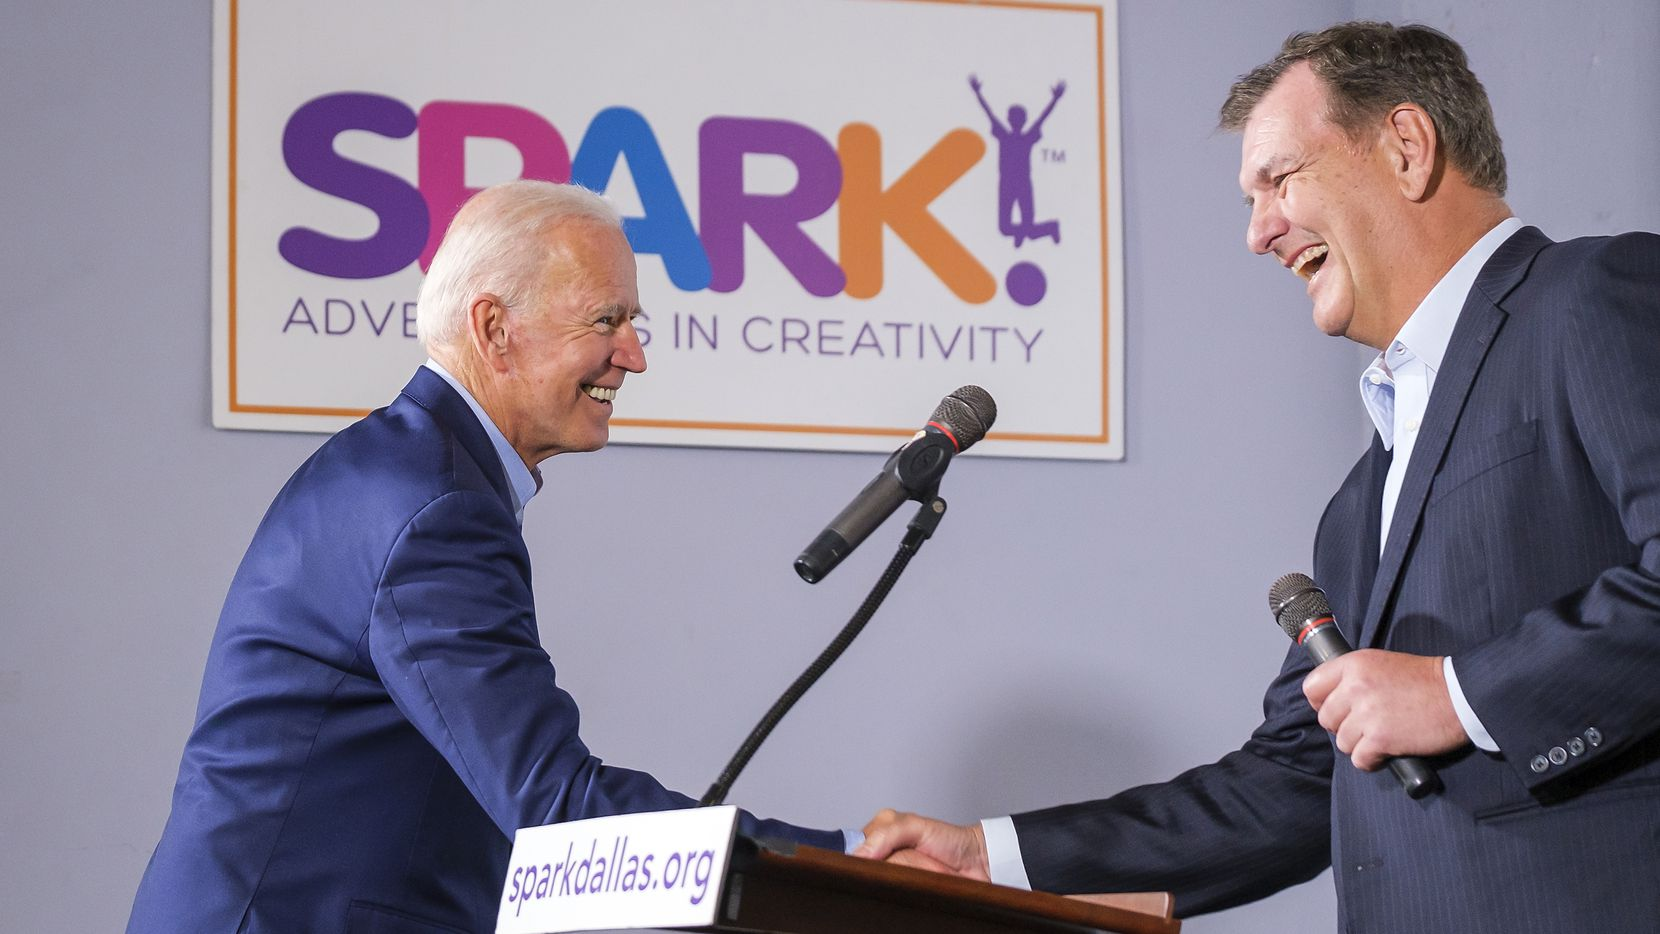 Democratic presidential candidate Joe Biden (left) shakes hands with Dallas Mayor Mike Rawlings as he is introduced to speak to participants in the Dallas Mayor's Intern Fellows Program as during a campaign event at SPARK! on Wednesday, May 29, 2019, in Dallas. (Smiley N. Pool/The Dallas Morning News)